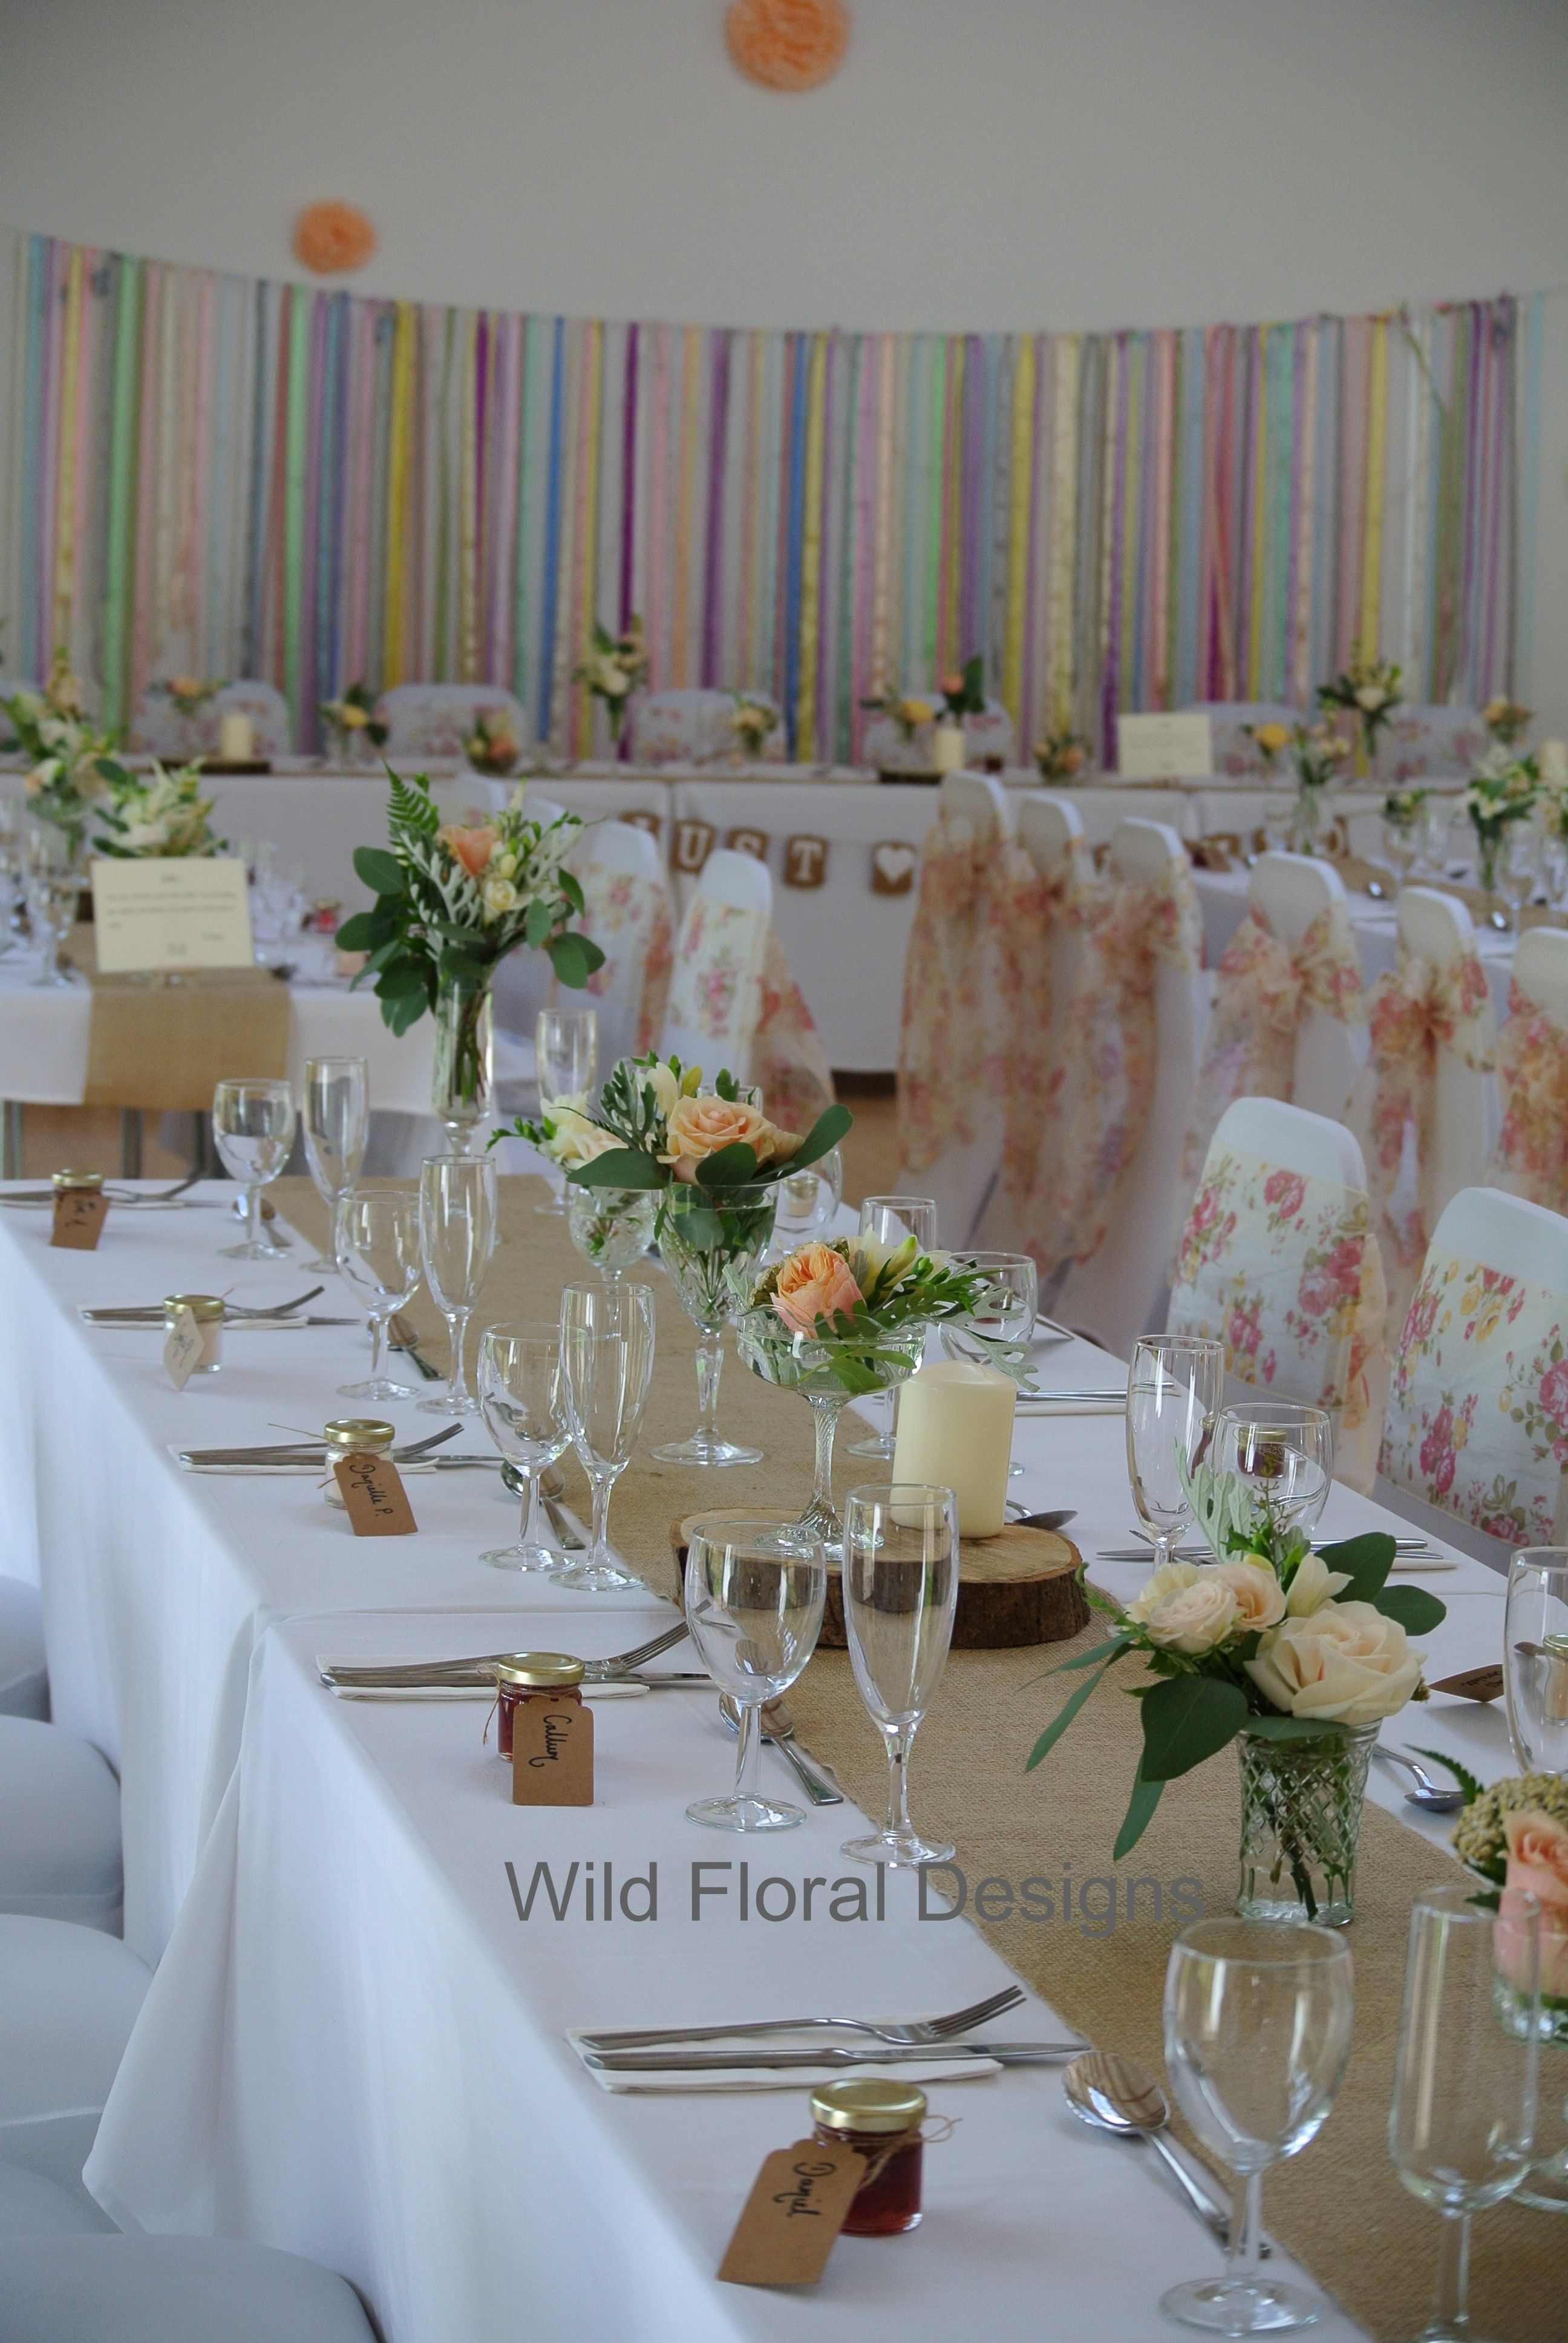 wedding chair covers devon teen girl chairs stokeinteignhead village hall sashes hessian table runners and floral